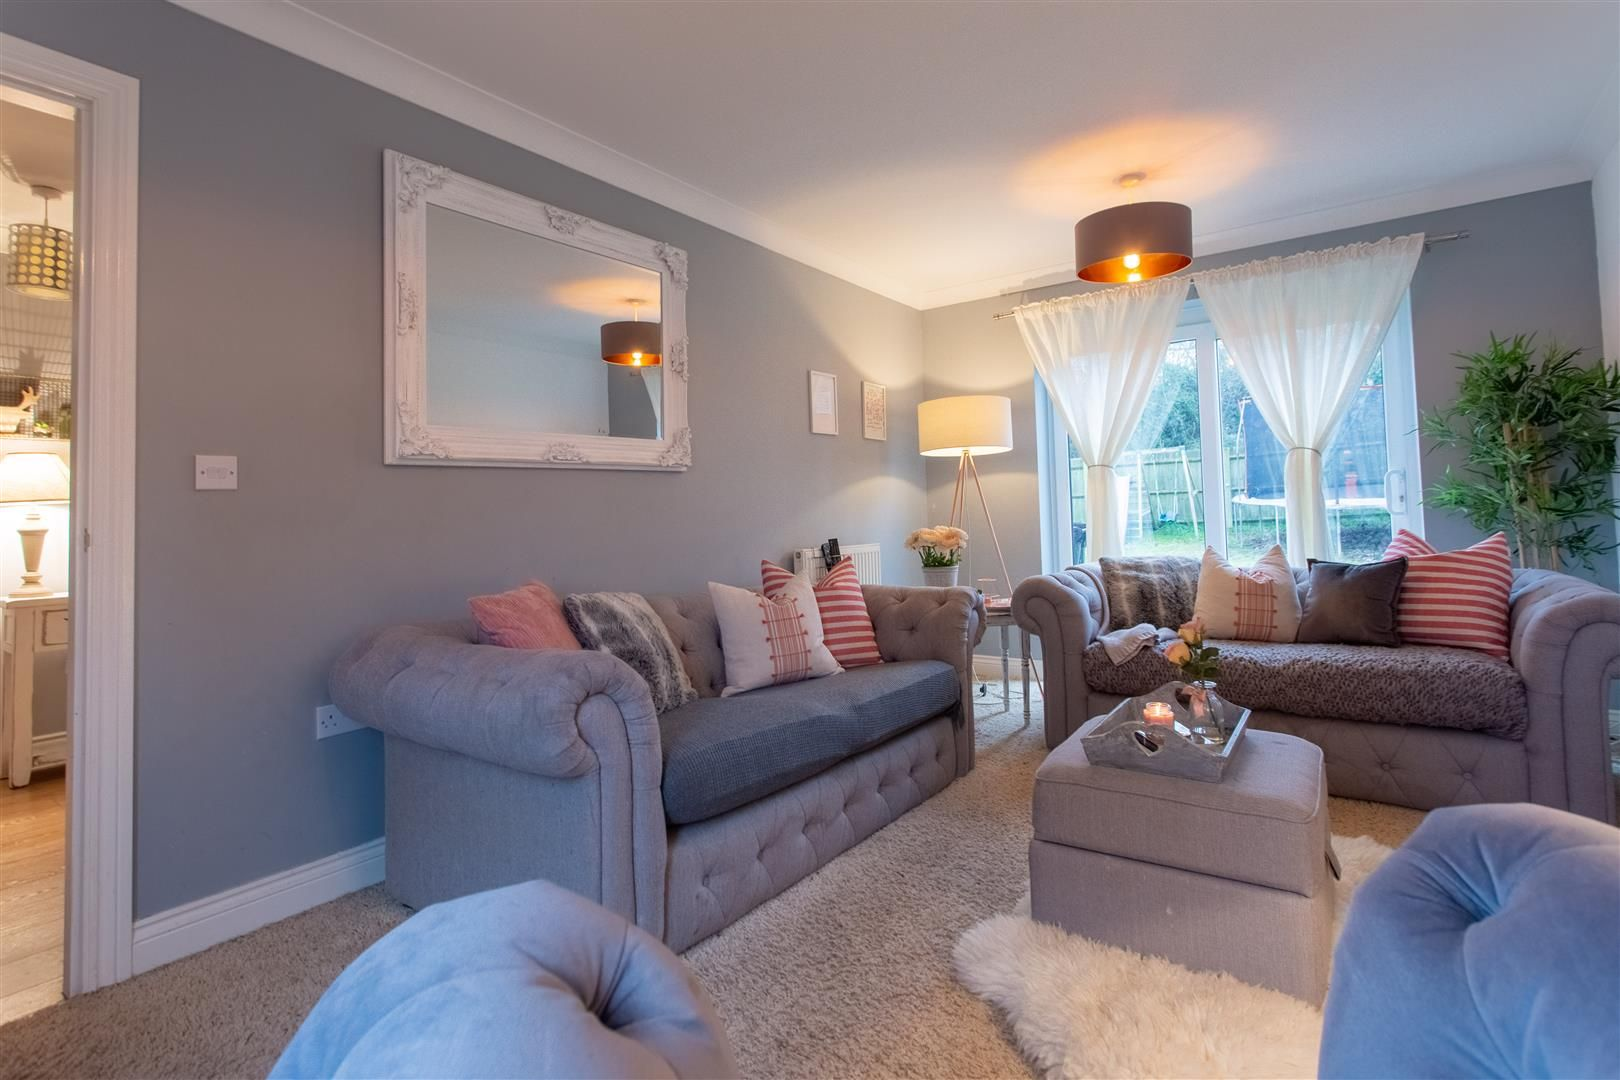 3 bed detached for sale in Hereford  - Property Image 7